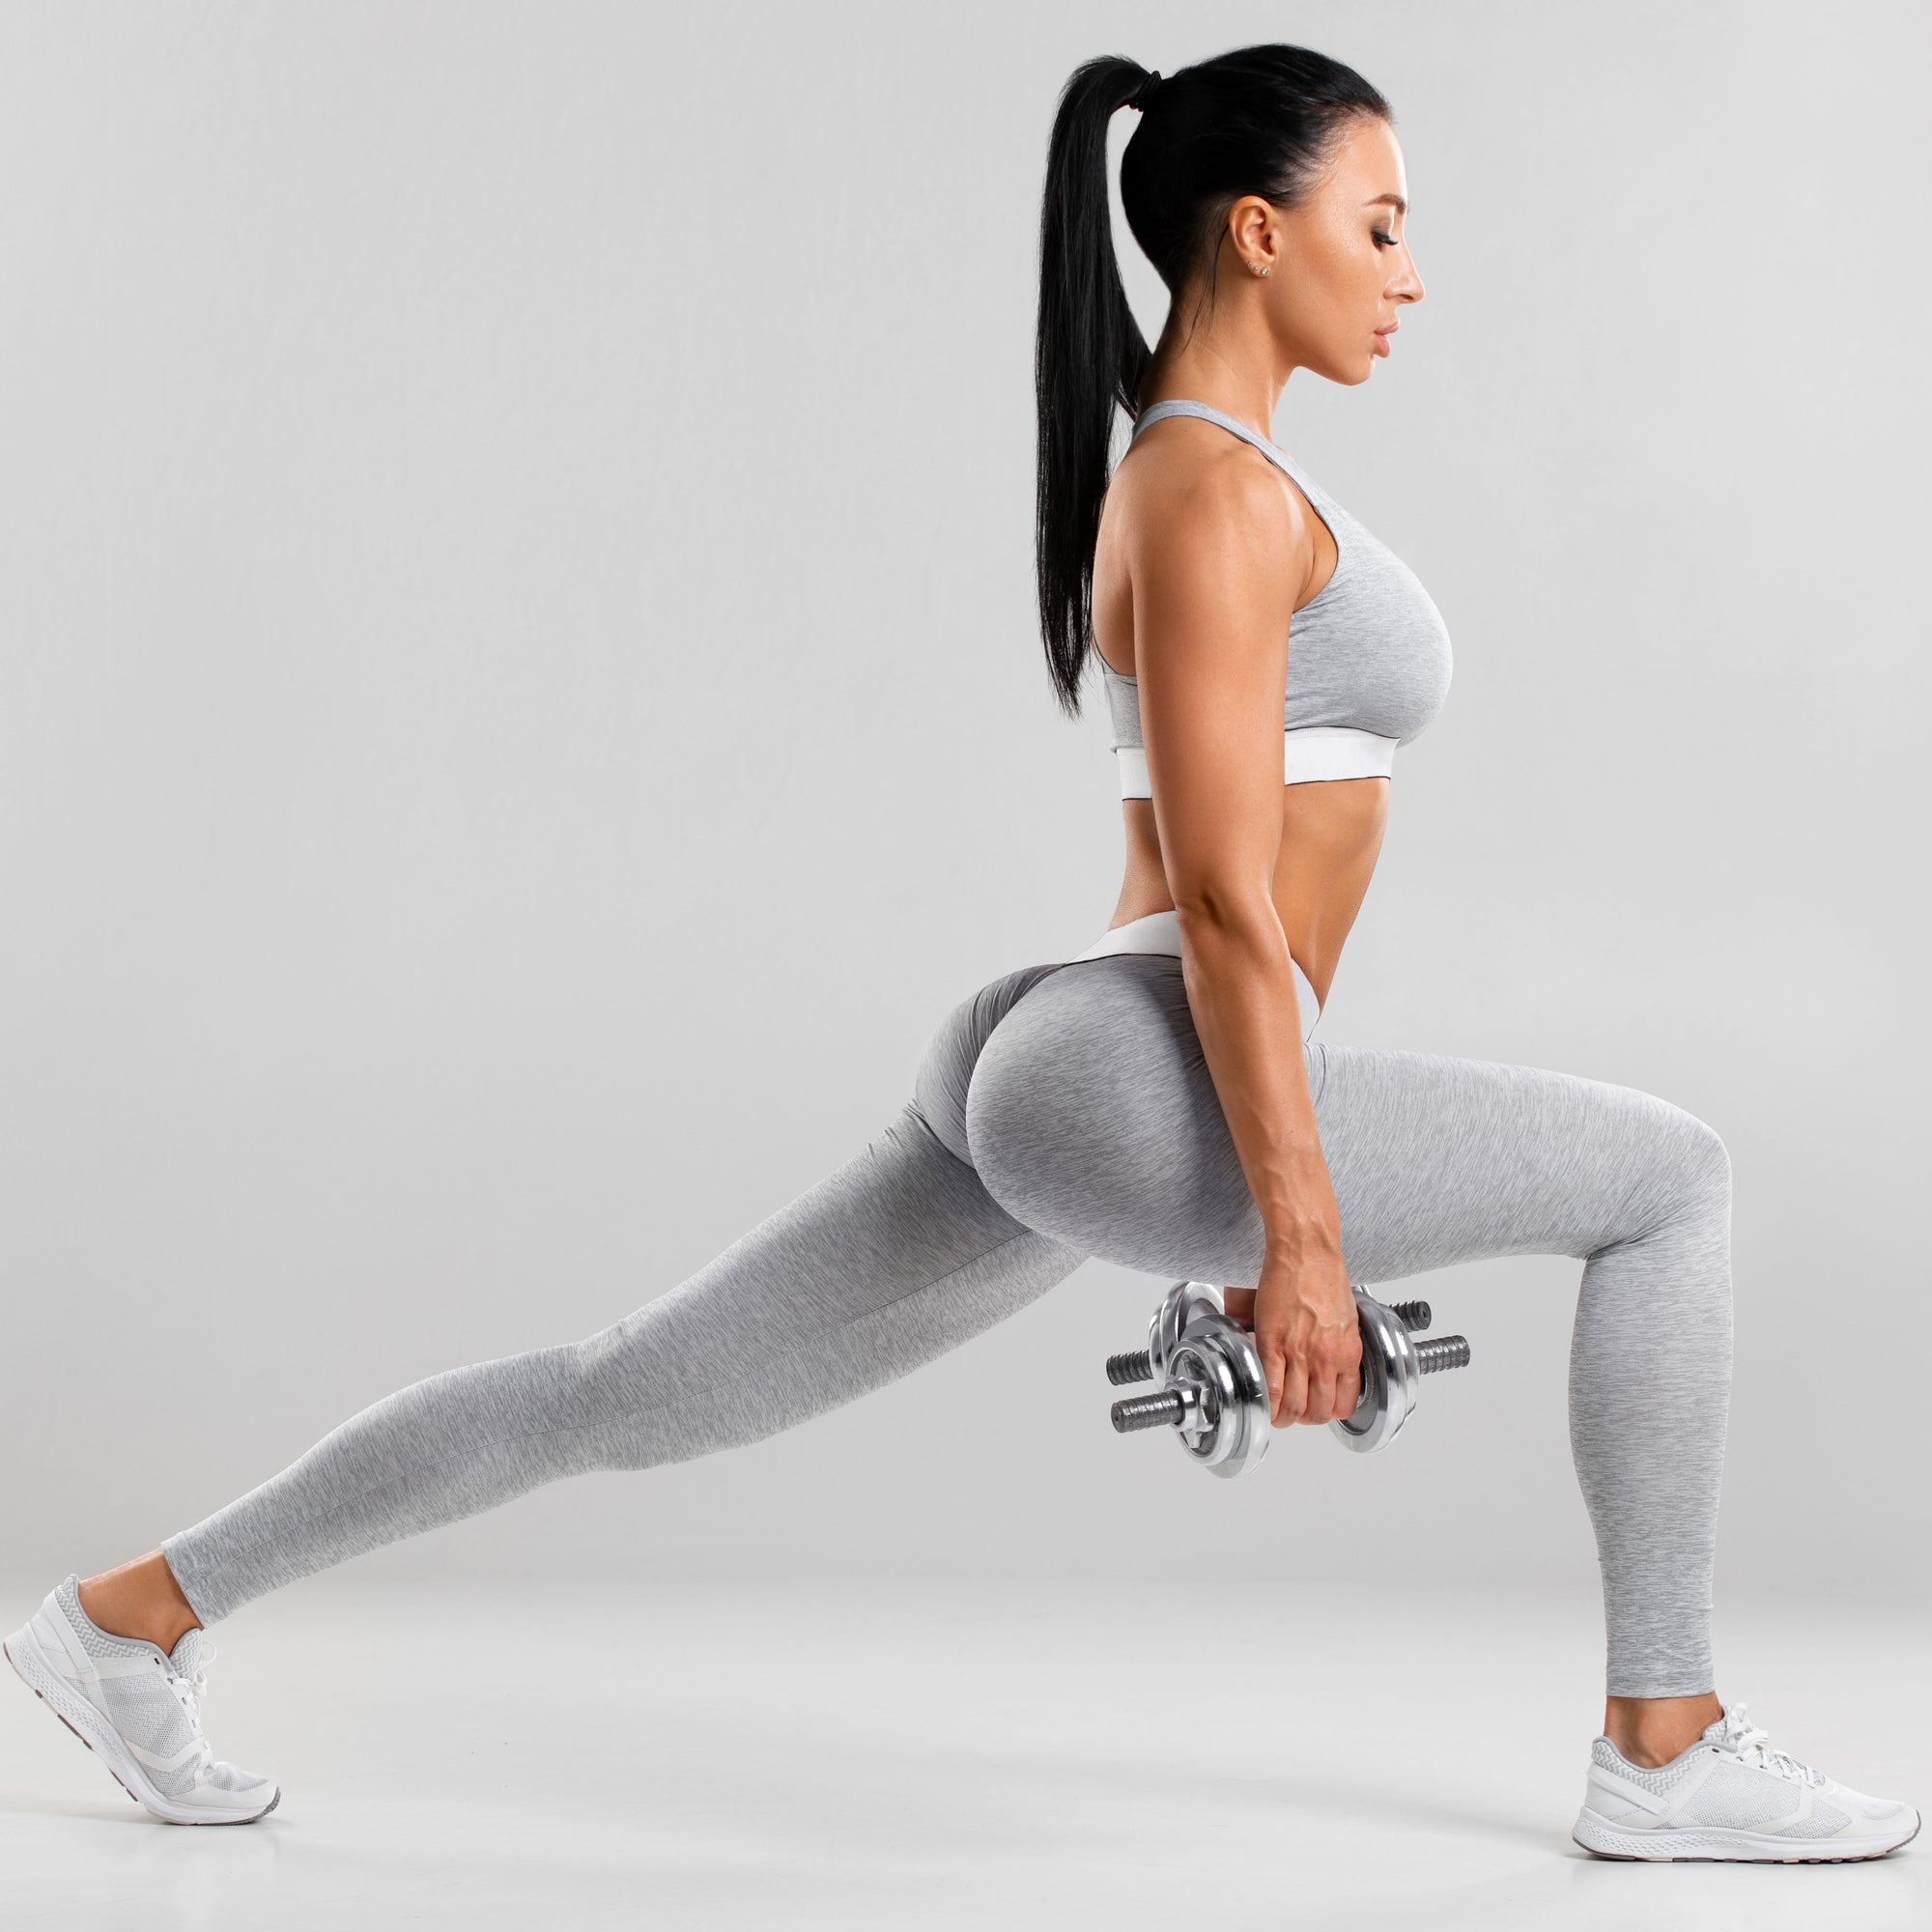 Top 5 Exercises To Build Stronger Glutes